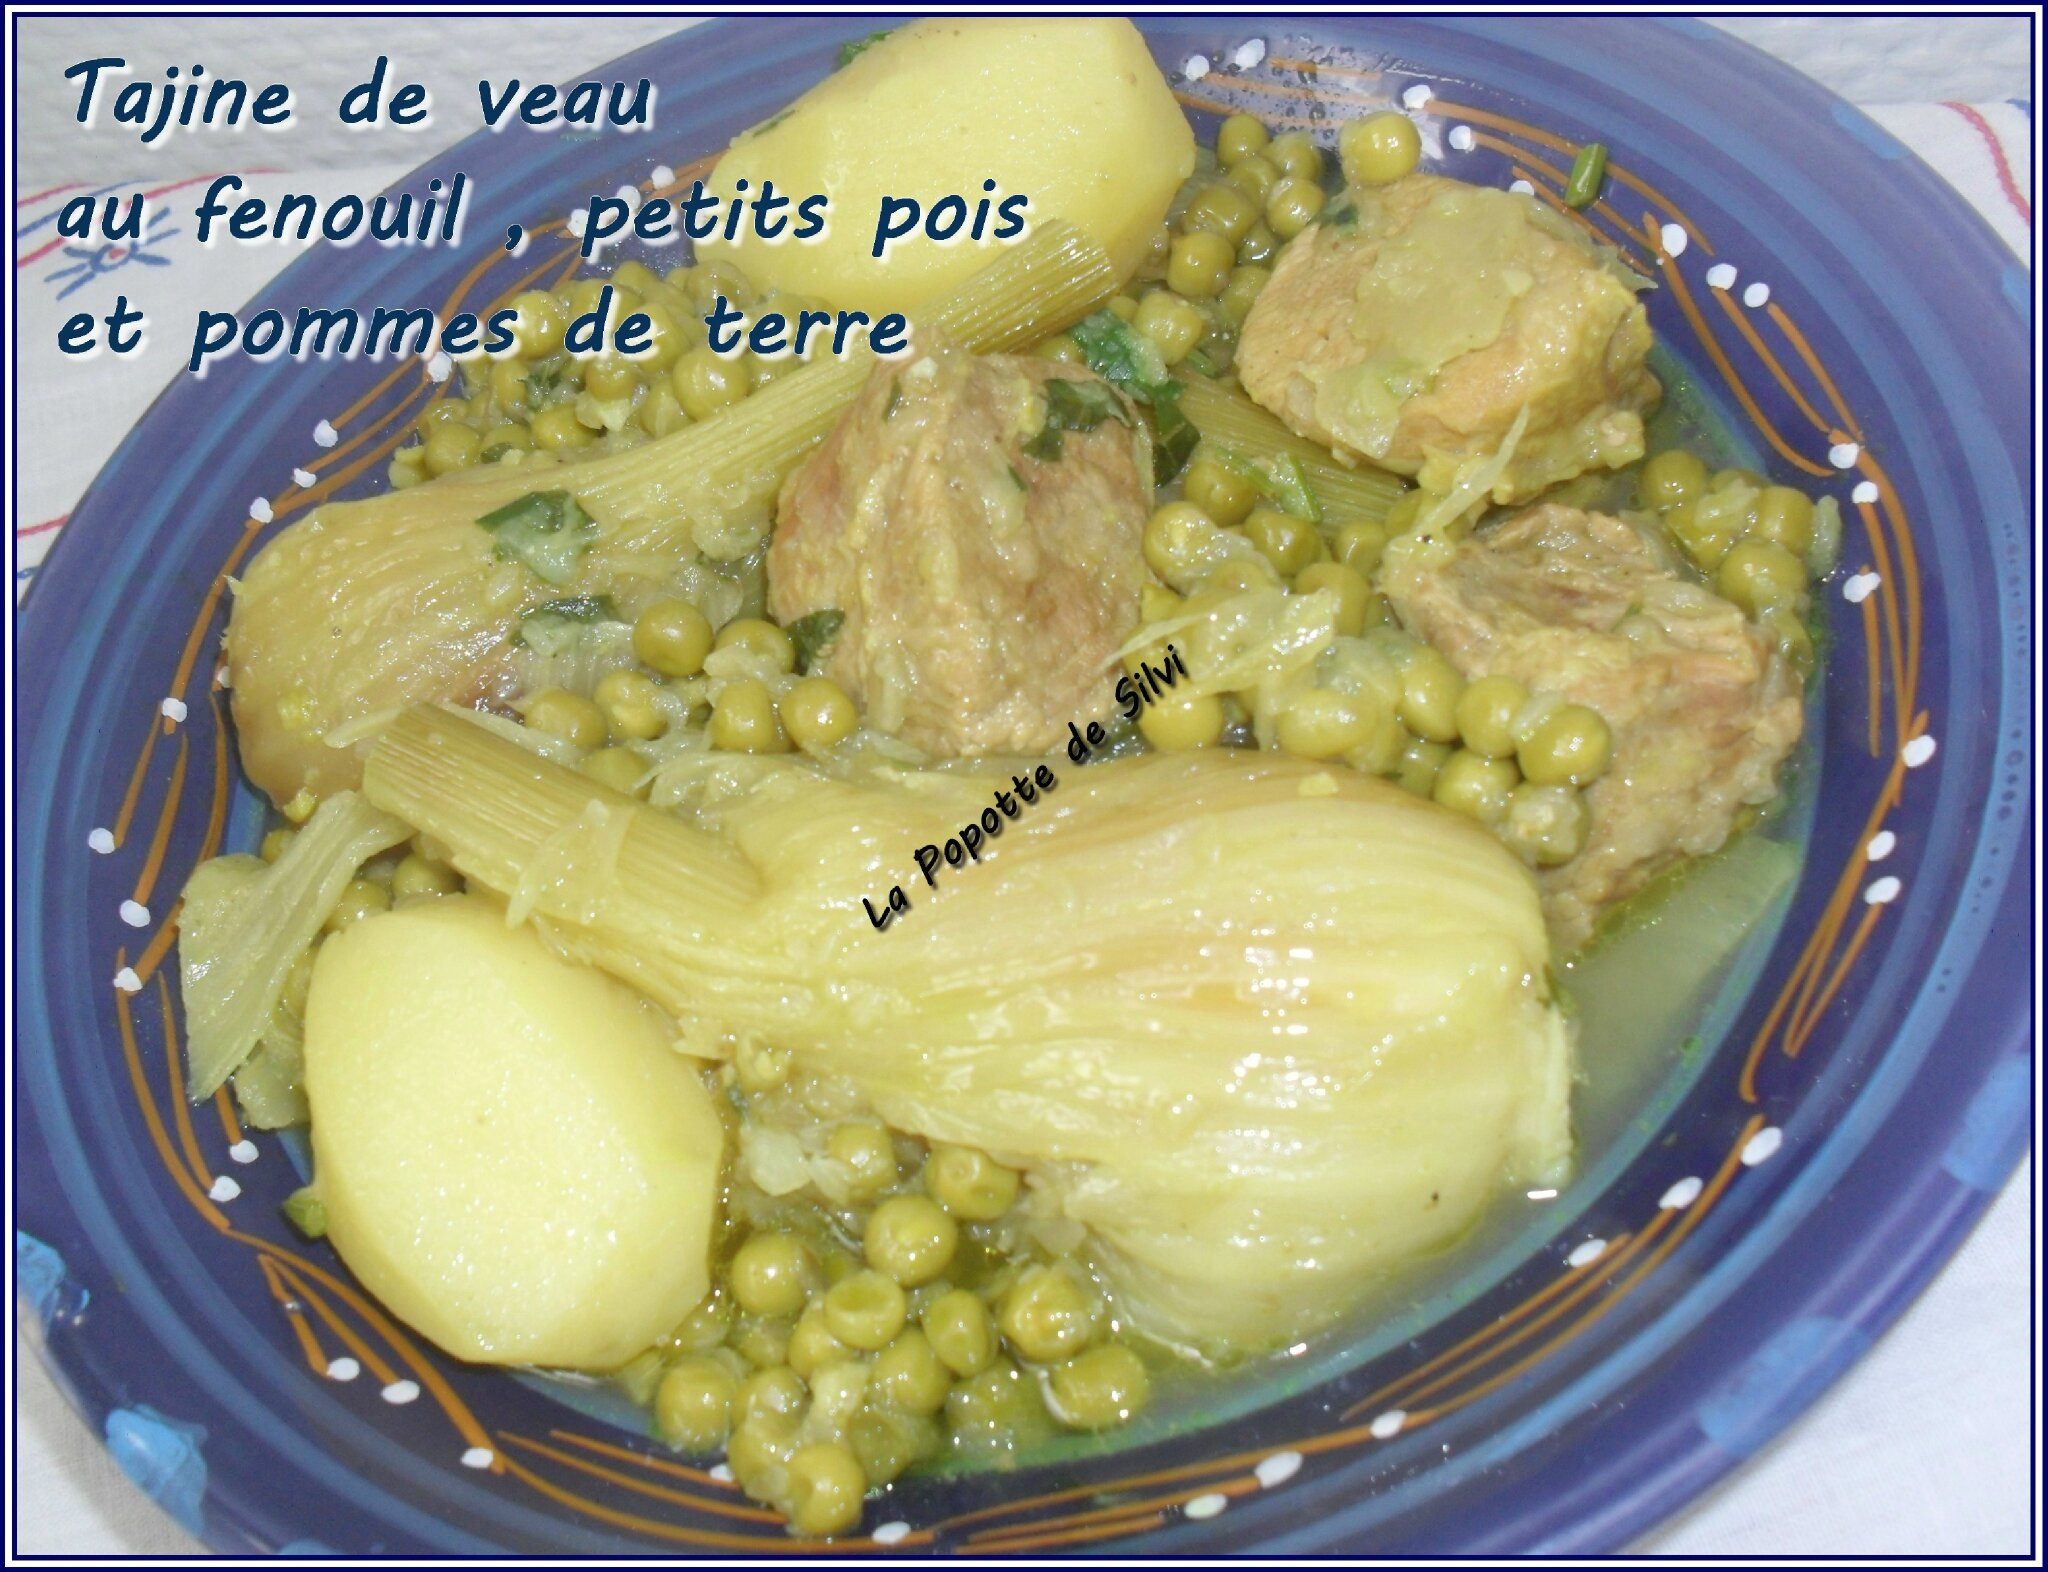 tajine de veau au fenouil petits pois et pommes de terre la popotte de silvi. Black Bedroom Furniture Sets. Home Design Ideas